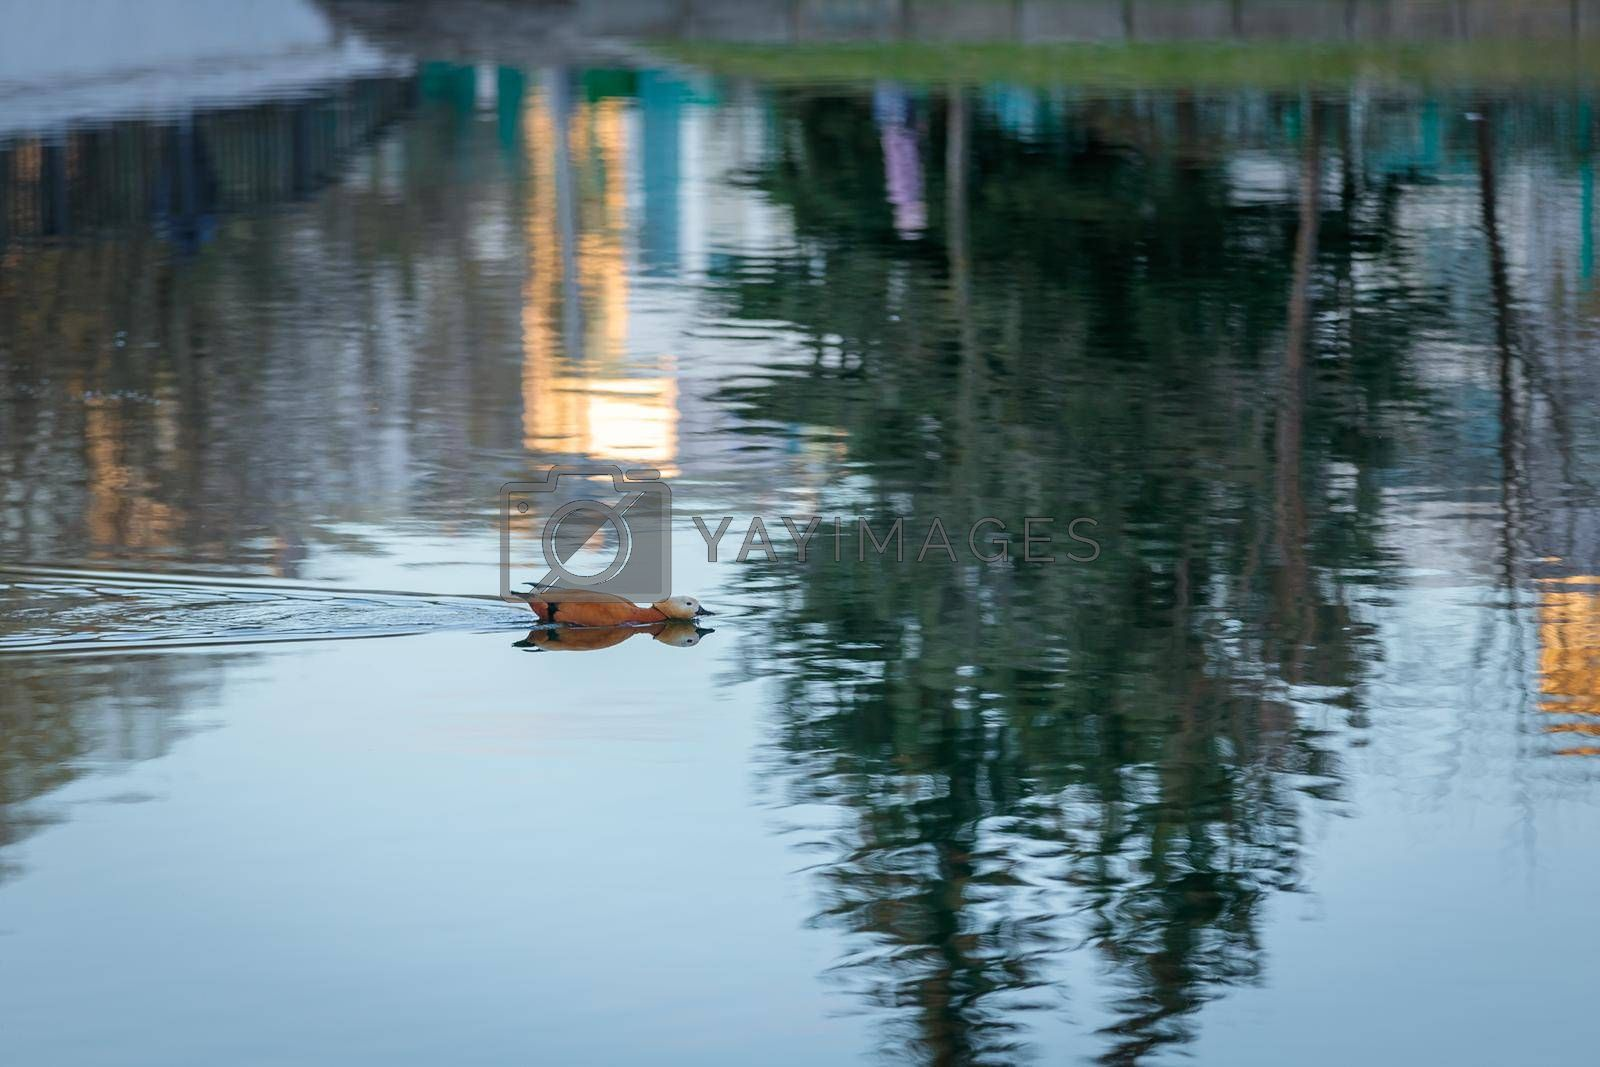 The duck swims in the city pond against the backdrop of the setting sun. Reflections of trees in the water.